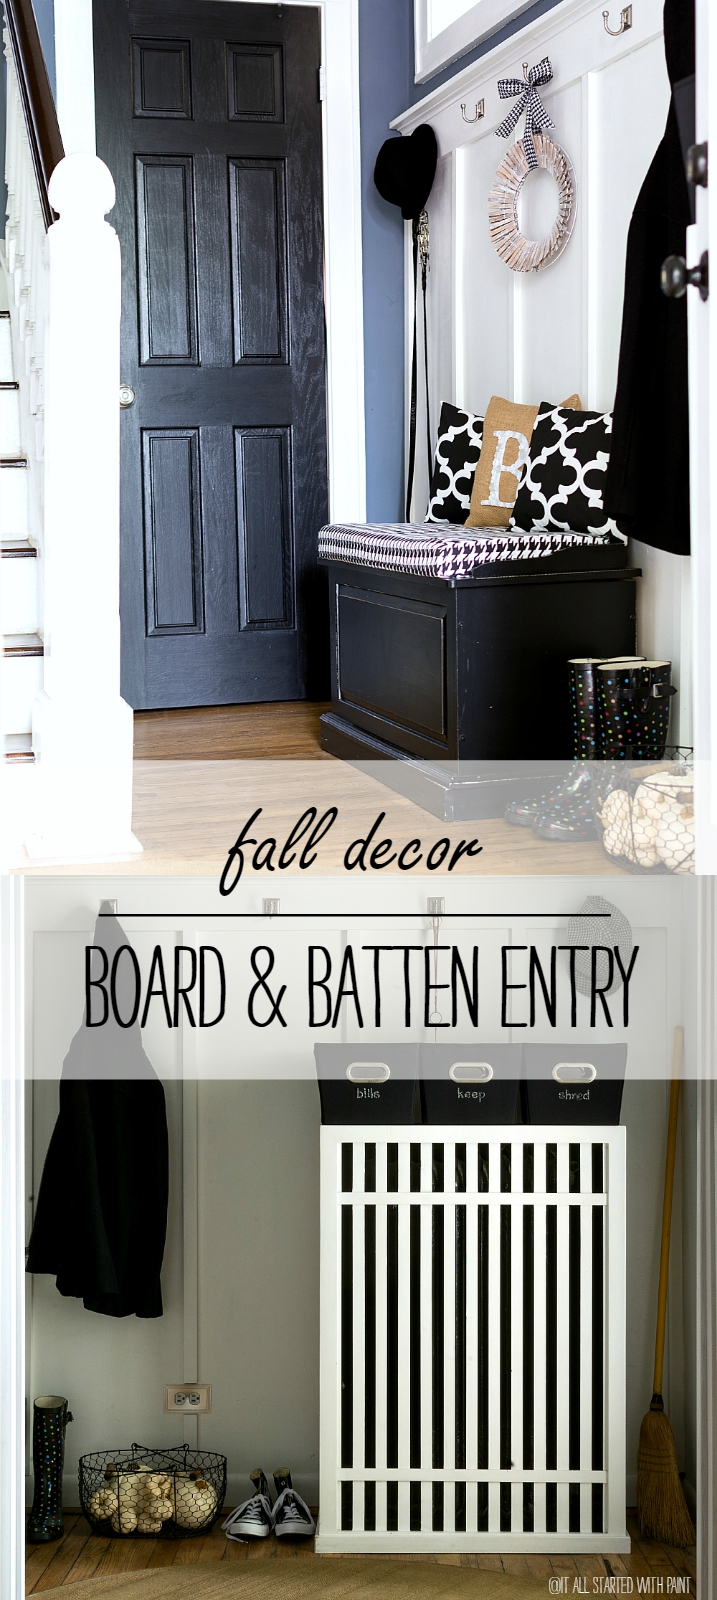 Board & Batten Entry: Black, White, Burlap For Fall